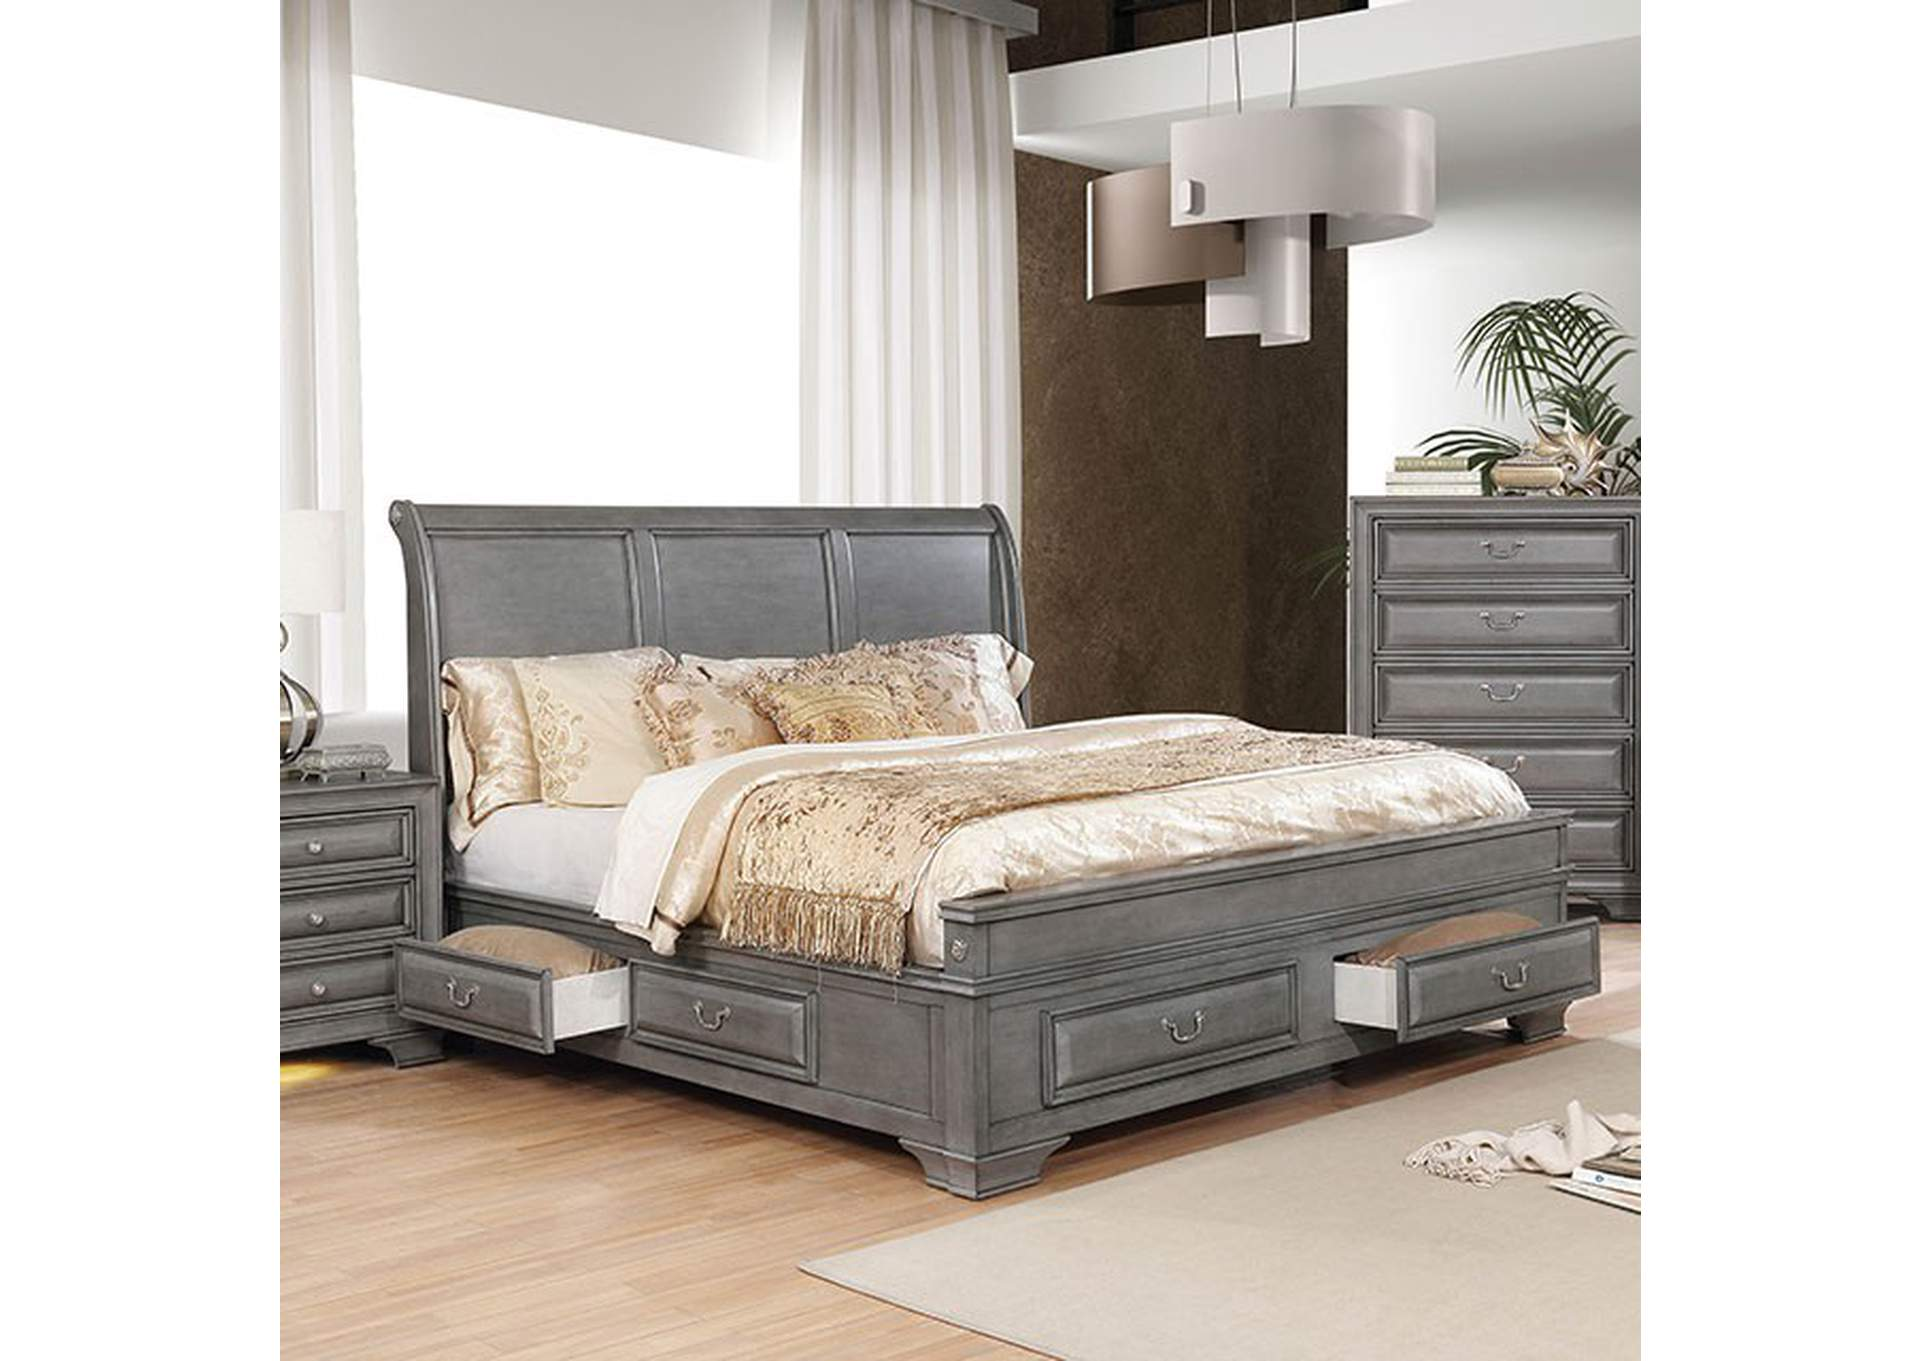 Brandt Gray Queen Storage Bed,Furniture of America